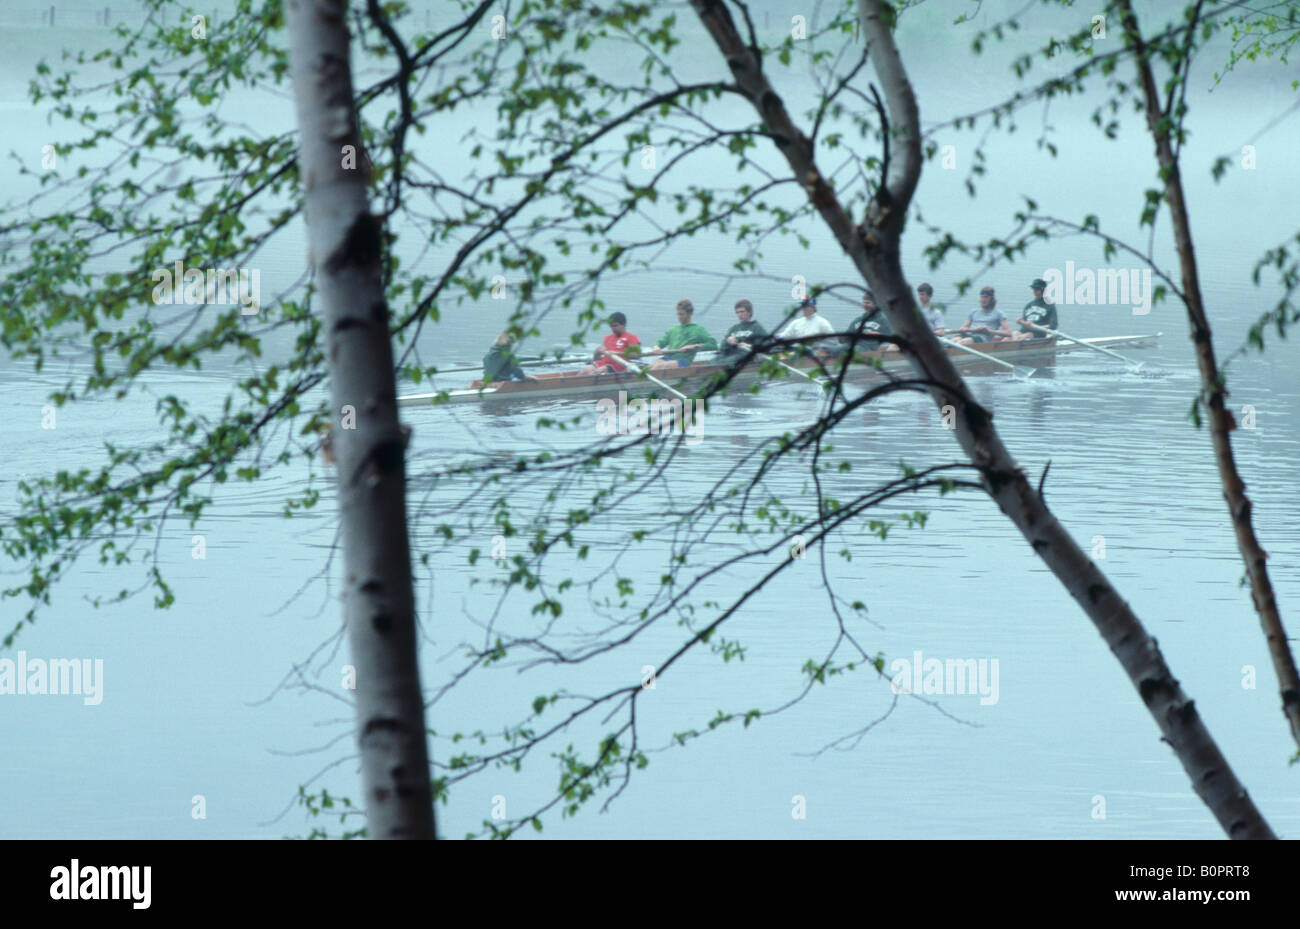 Sculling Connecticut River Dartmouth College Hanover New Hampshire Stock Photo